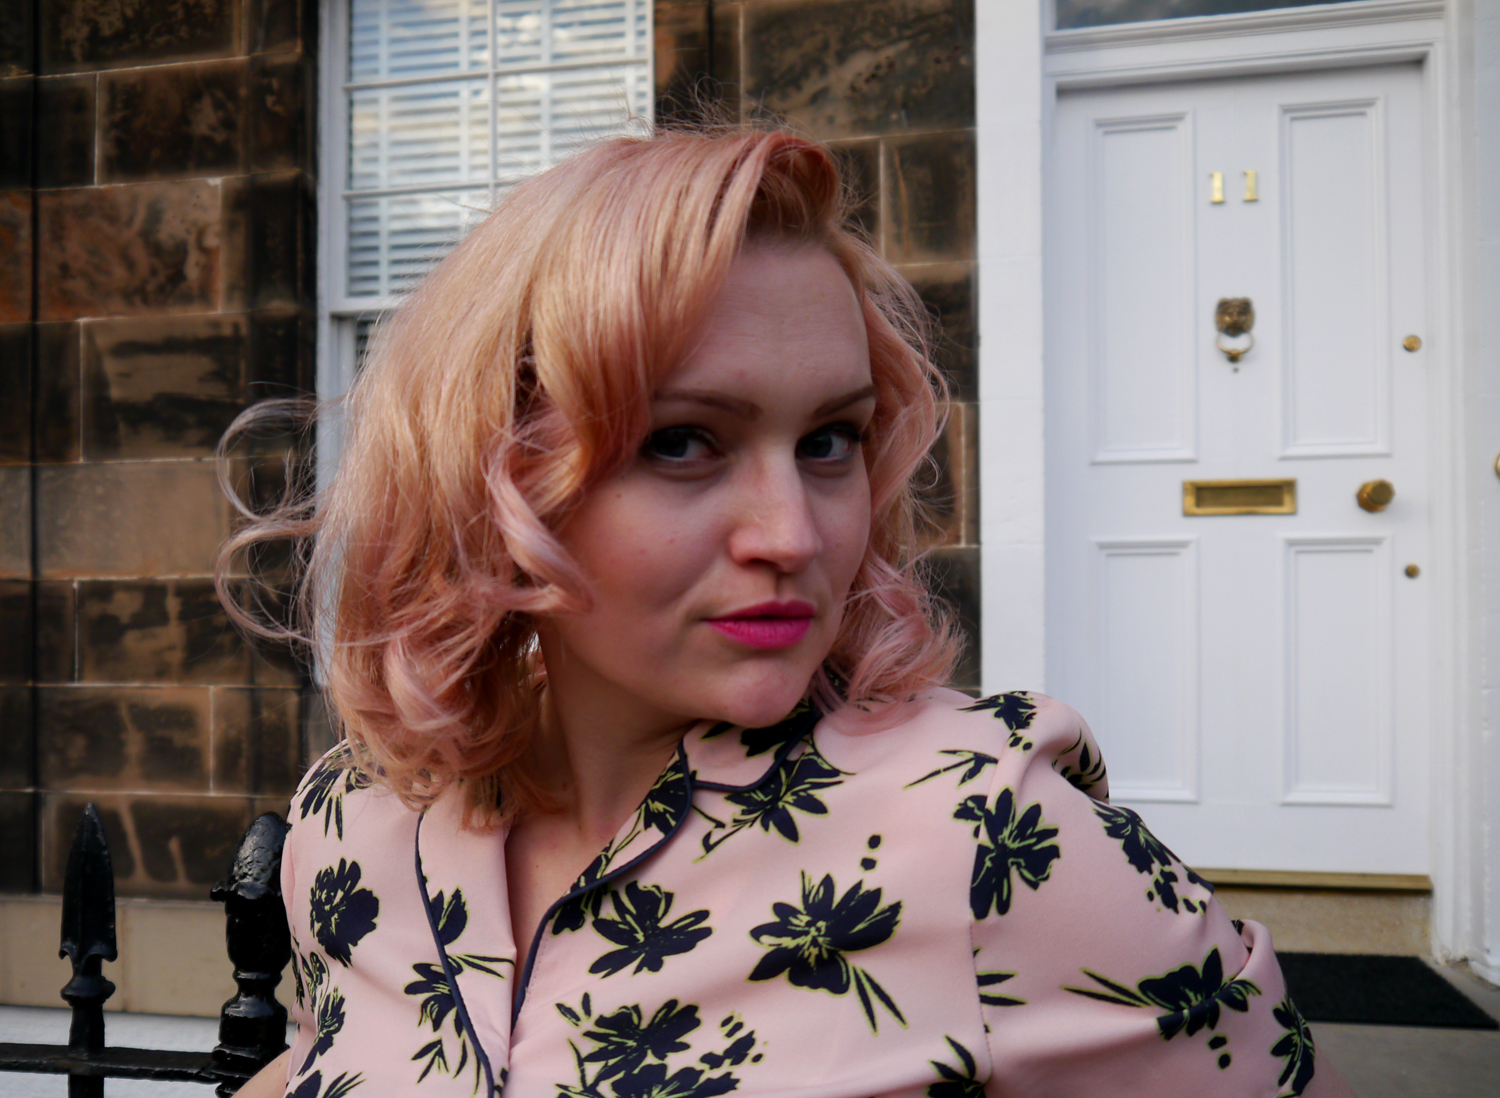 pink pin up hair, 1950s hairstyle, Hawaiian shirt, scottish fashion blog, pink hair DIY, mathcing hair and lipstick, Edinburgh blogger, Scottish blogger, Wardrobe Conversations